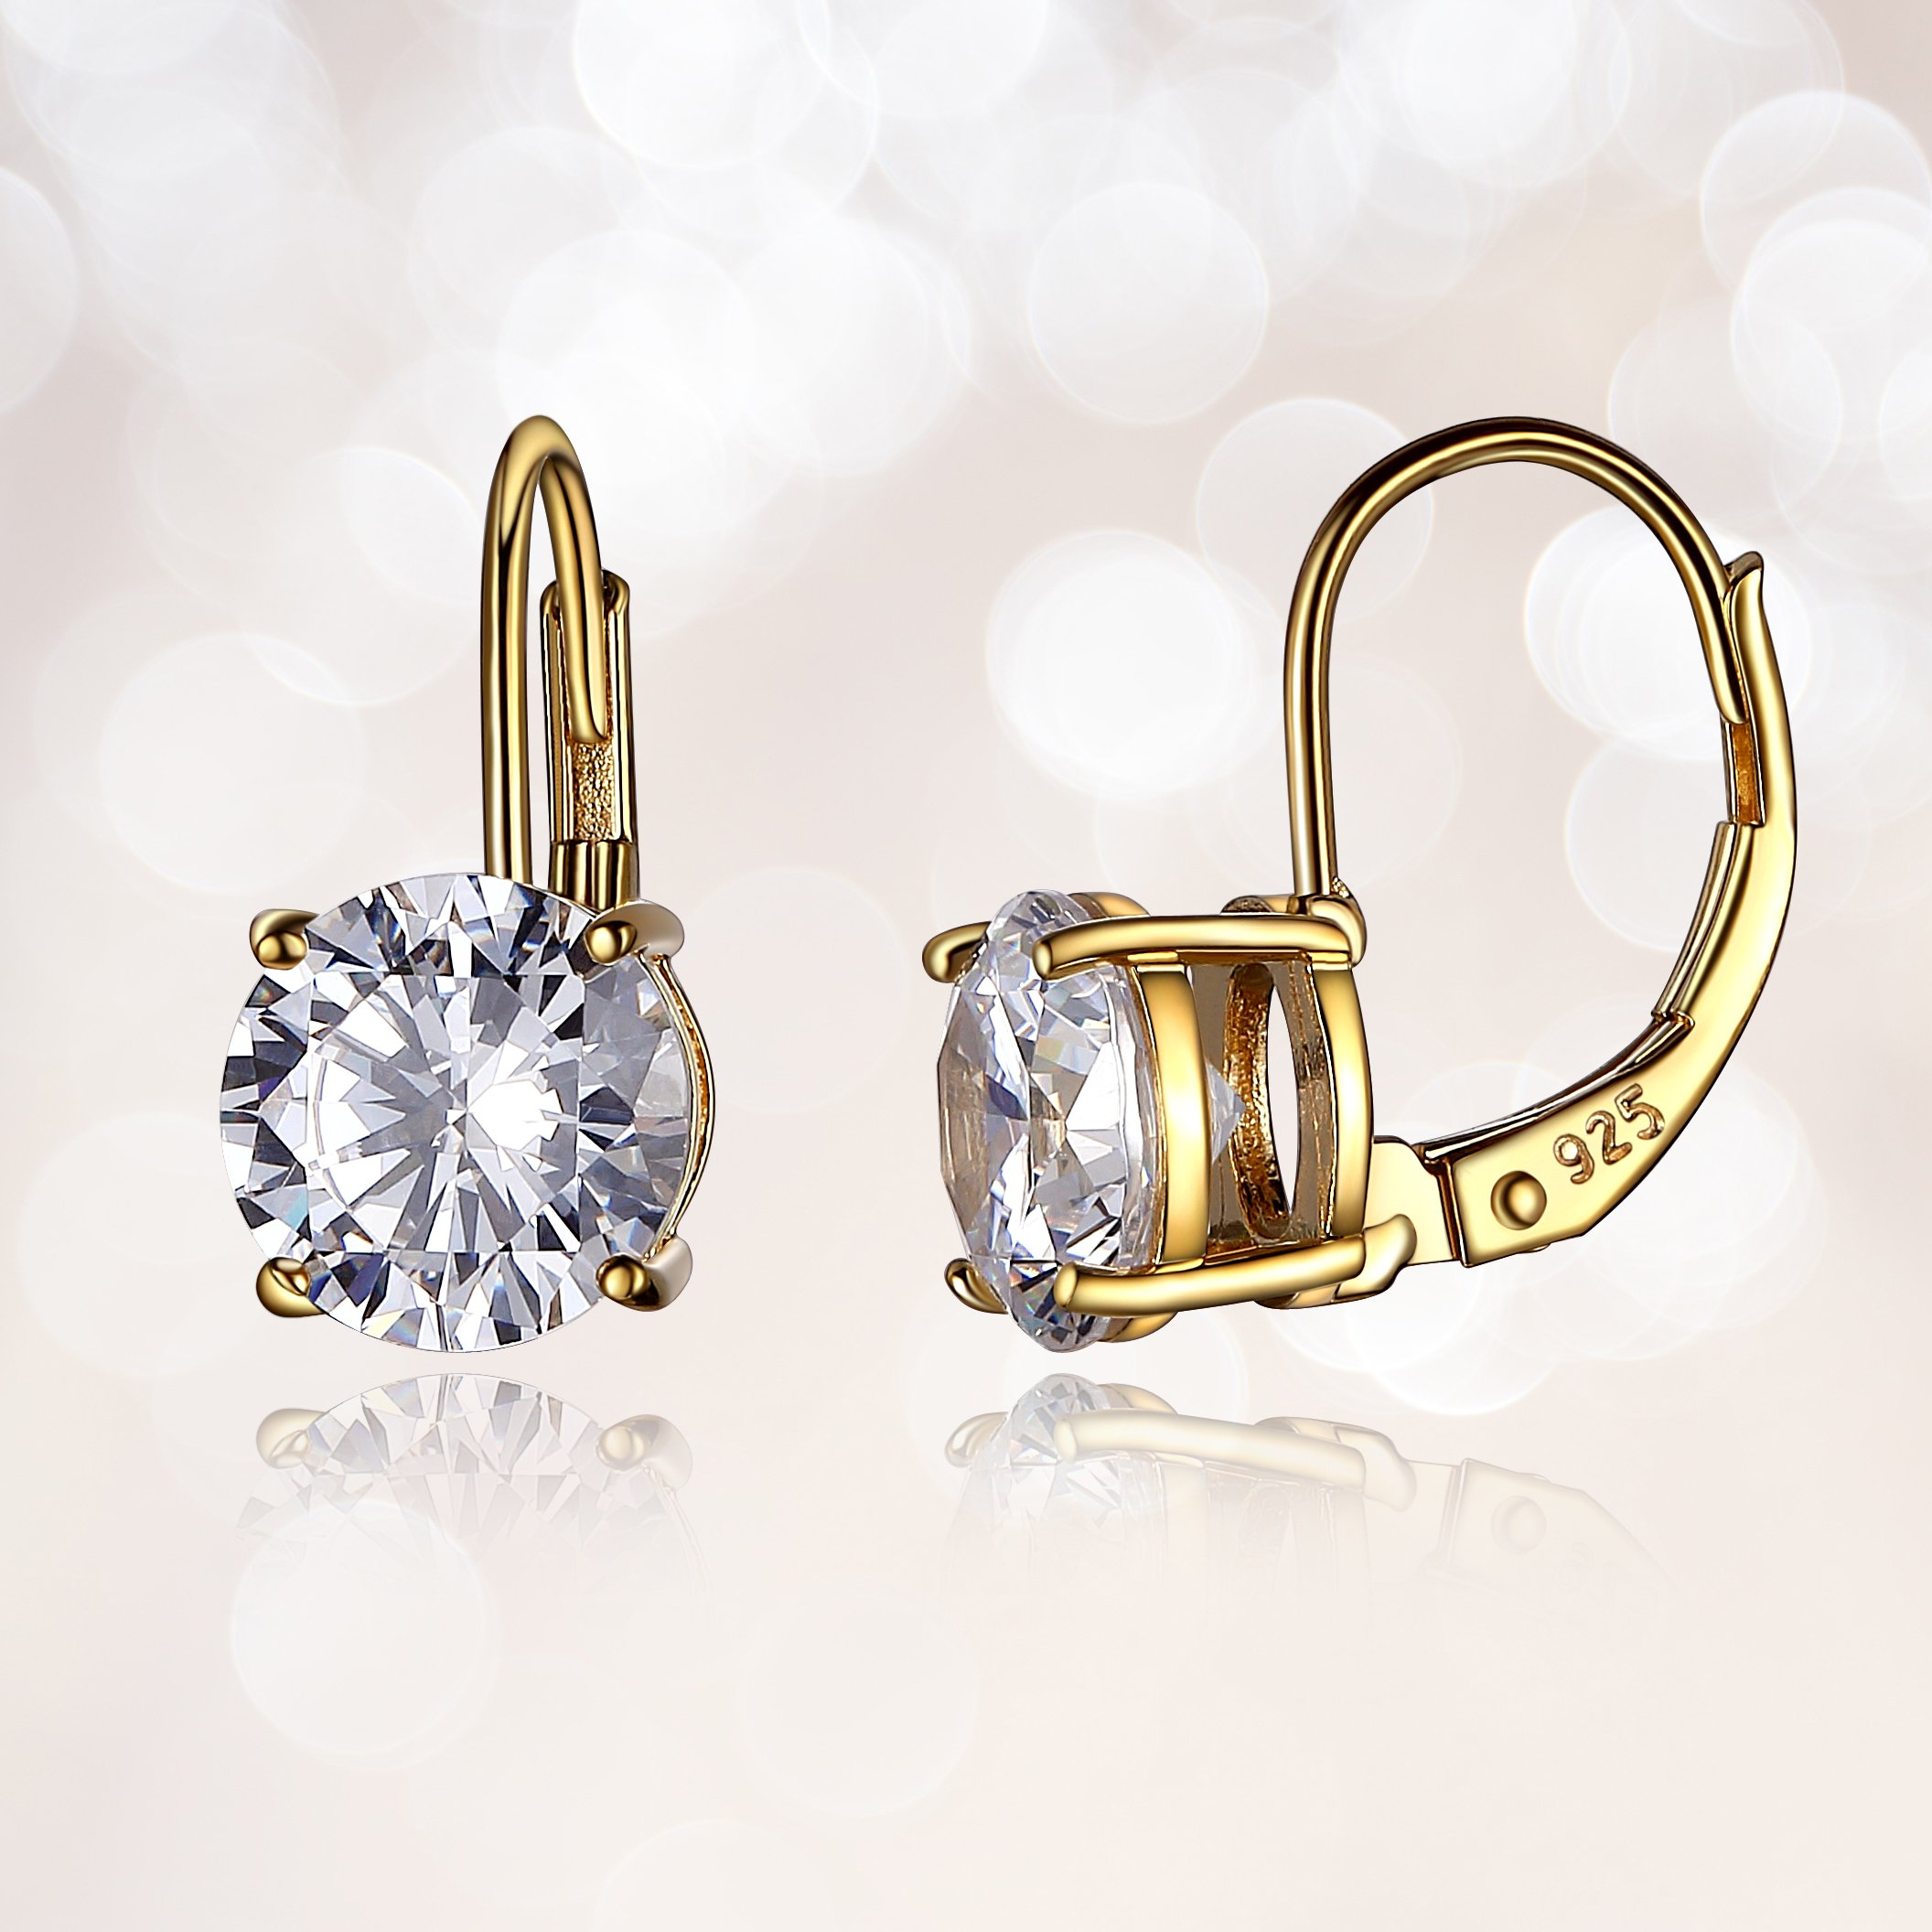 14k Yellow Gold Plated Sterling Silver Round 7.5mm Cubic Zirconia Leverback Earrings (3 cttw)